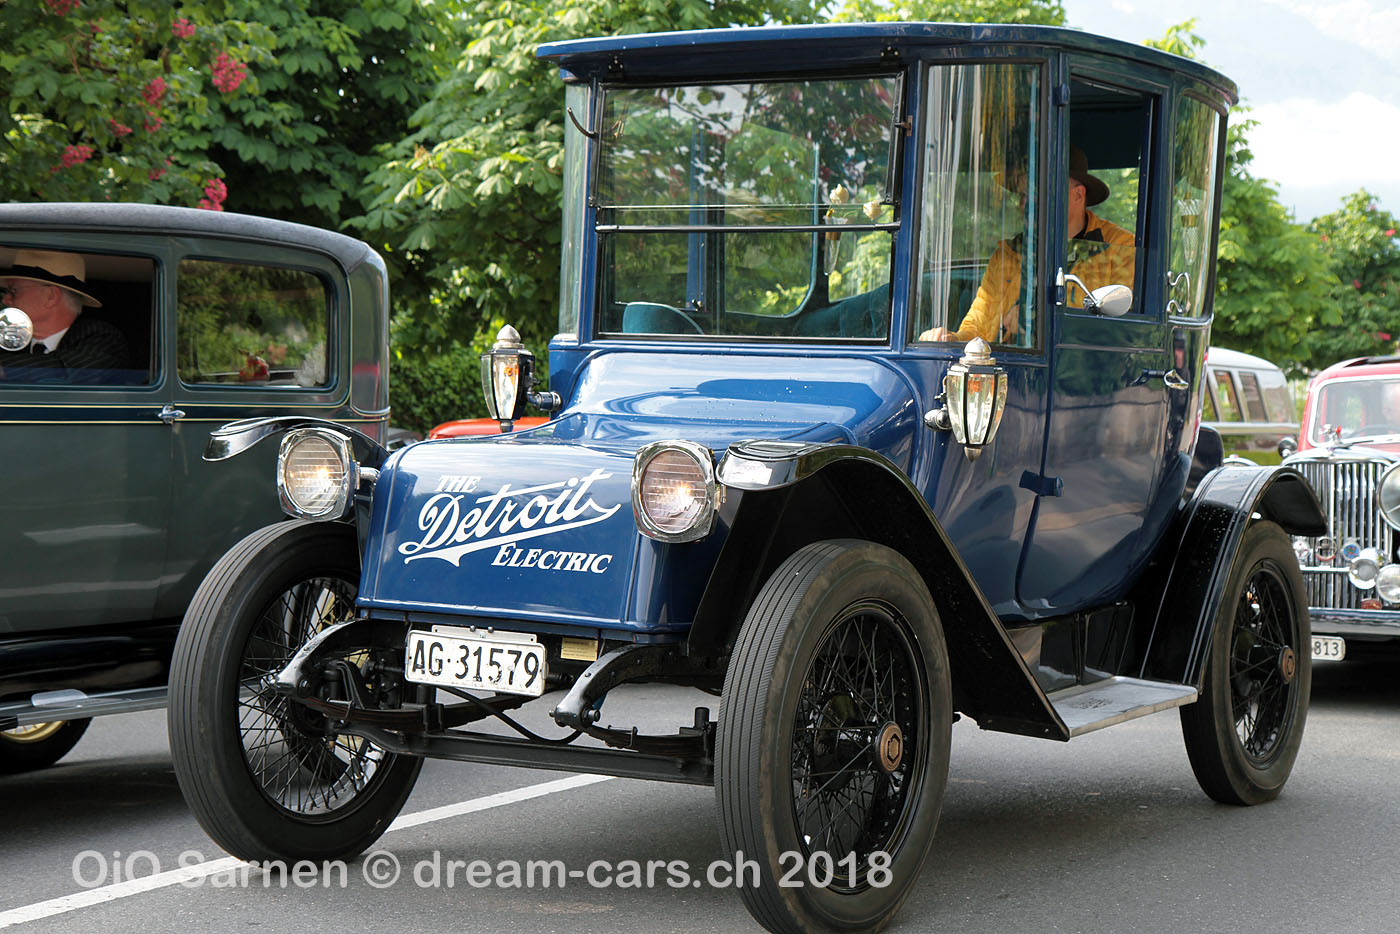 1918 Detroit Electric am O-iO Sarnen 2018